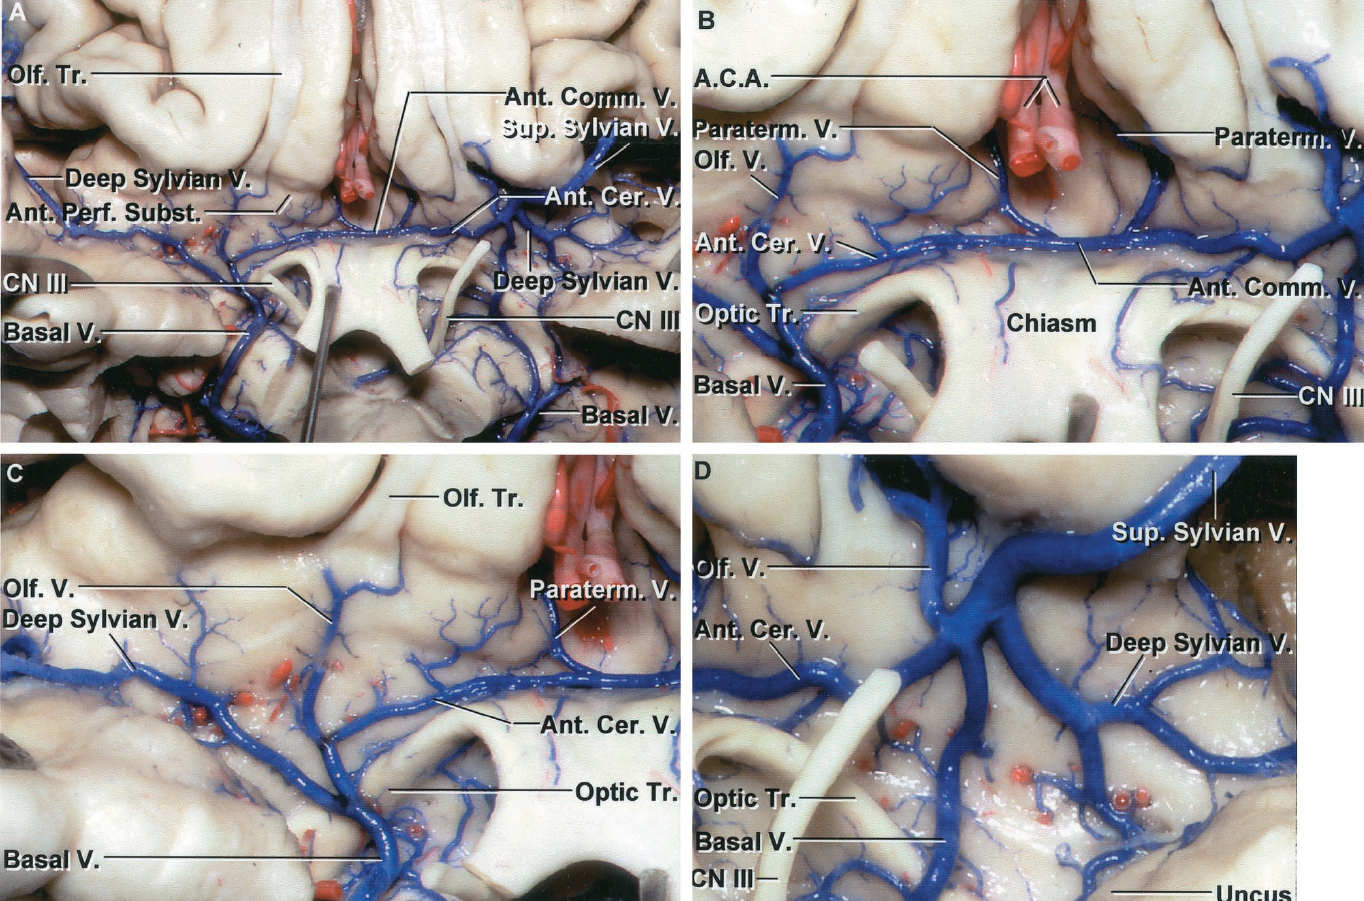 FIGURE 4.21. A-D. Territory of the basal vein. A, inferior view of the frontal lobe and anterior perforated substance with the optic chiasm reflected downward. The anterior cerebral veins pass above the optic chiasm and are joined across the midline by an anterior communicating vein. The anterior cerebral veins join the veins draining the posterior part of the orbital surface of the frontal lobe and the superficial and deep sylvian veins to constitute the anterior end of the basal vein. B, enlarged view of the anterior cerebral and anterior communicating veins. Paraterminal veins, draining the cortical areas below the genu of the corpus callosum, join the anterior cerebral veins near the junction with the anterior communicating veins. C, enlarged view of the right deep sylvian and anterior cerebral veins joining below the anterior perforated substance to form the anterior end of the basal vein. D, enlarged view of the large left superficial sylvian and smaller deep sylvian veins joining the anterior cerebral and olfactory veins to empty into the anterior end of the basal vein.